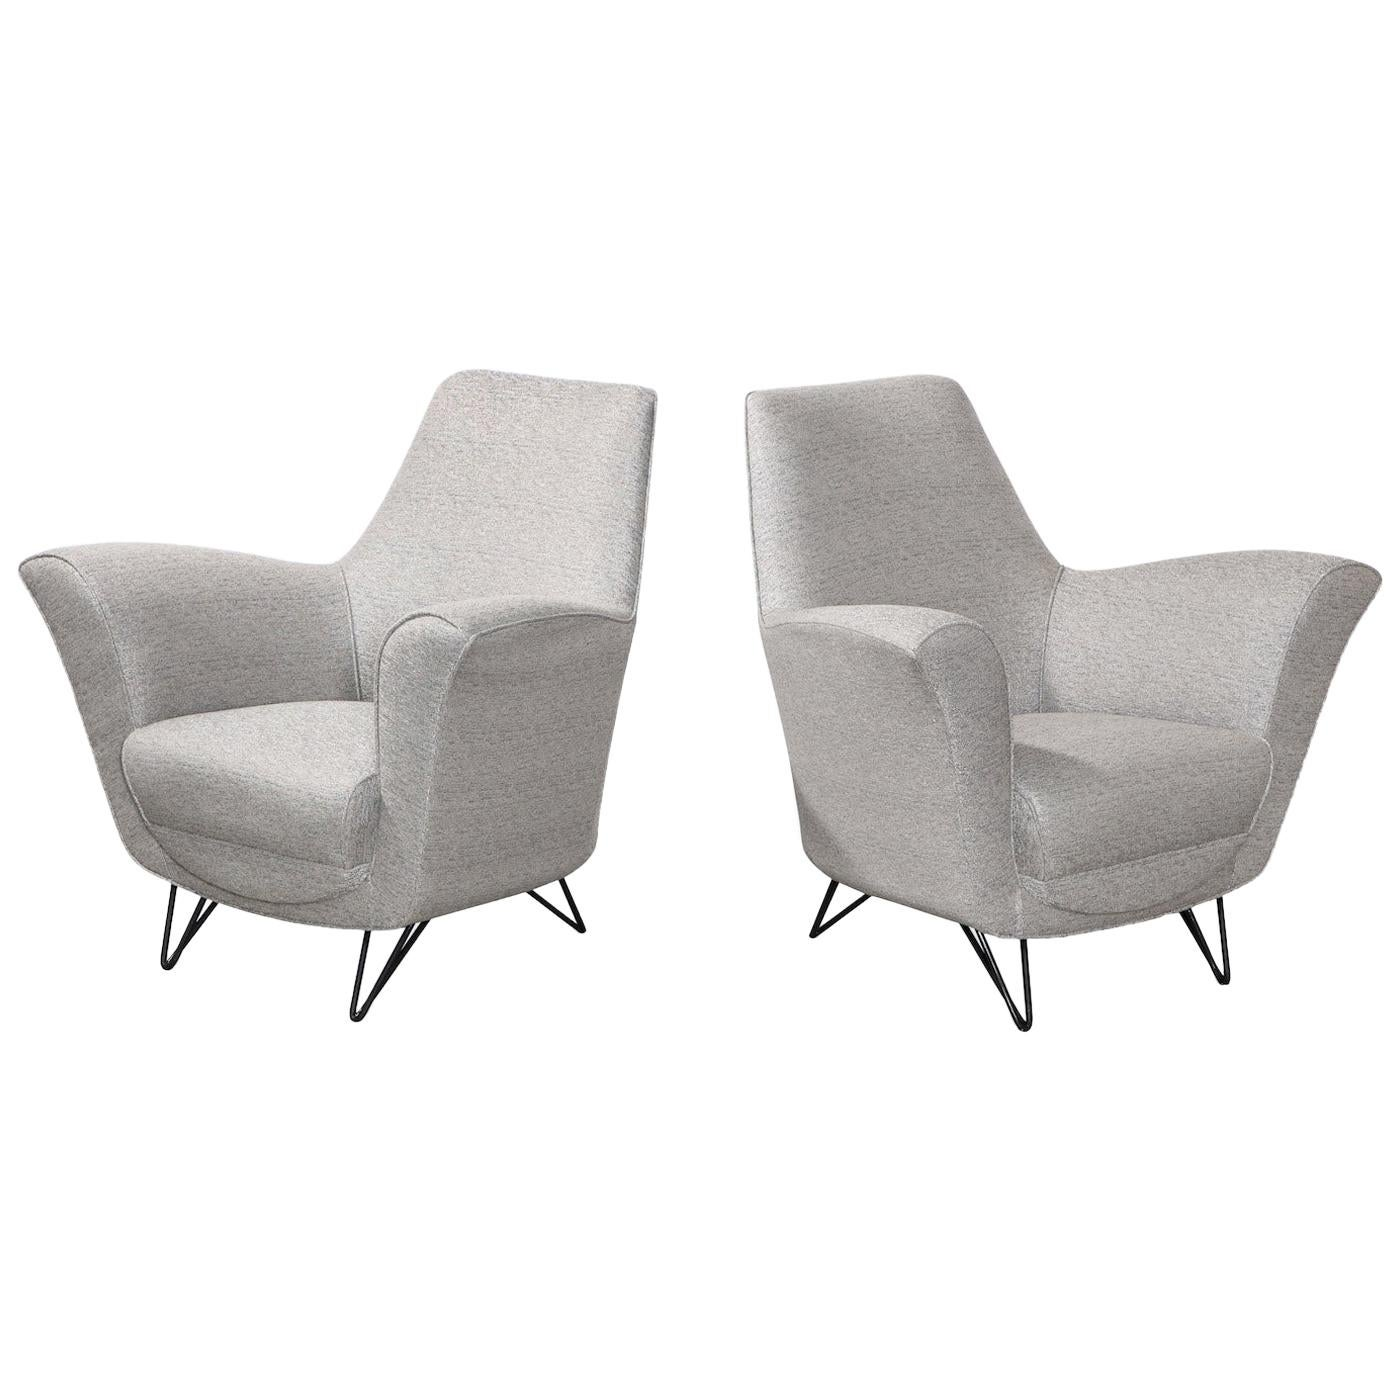 Ico Parisi Attributed Lounge Chairs